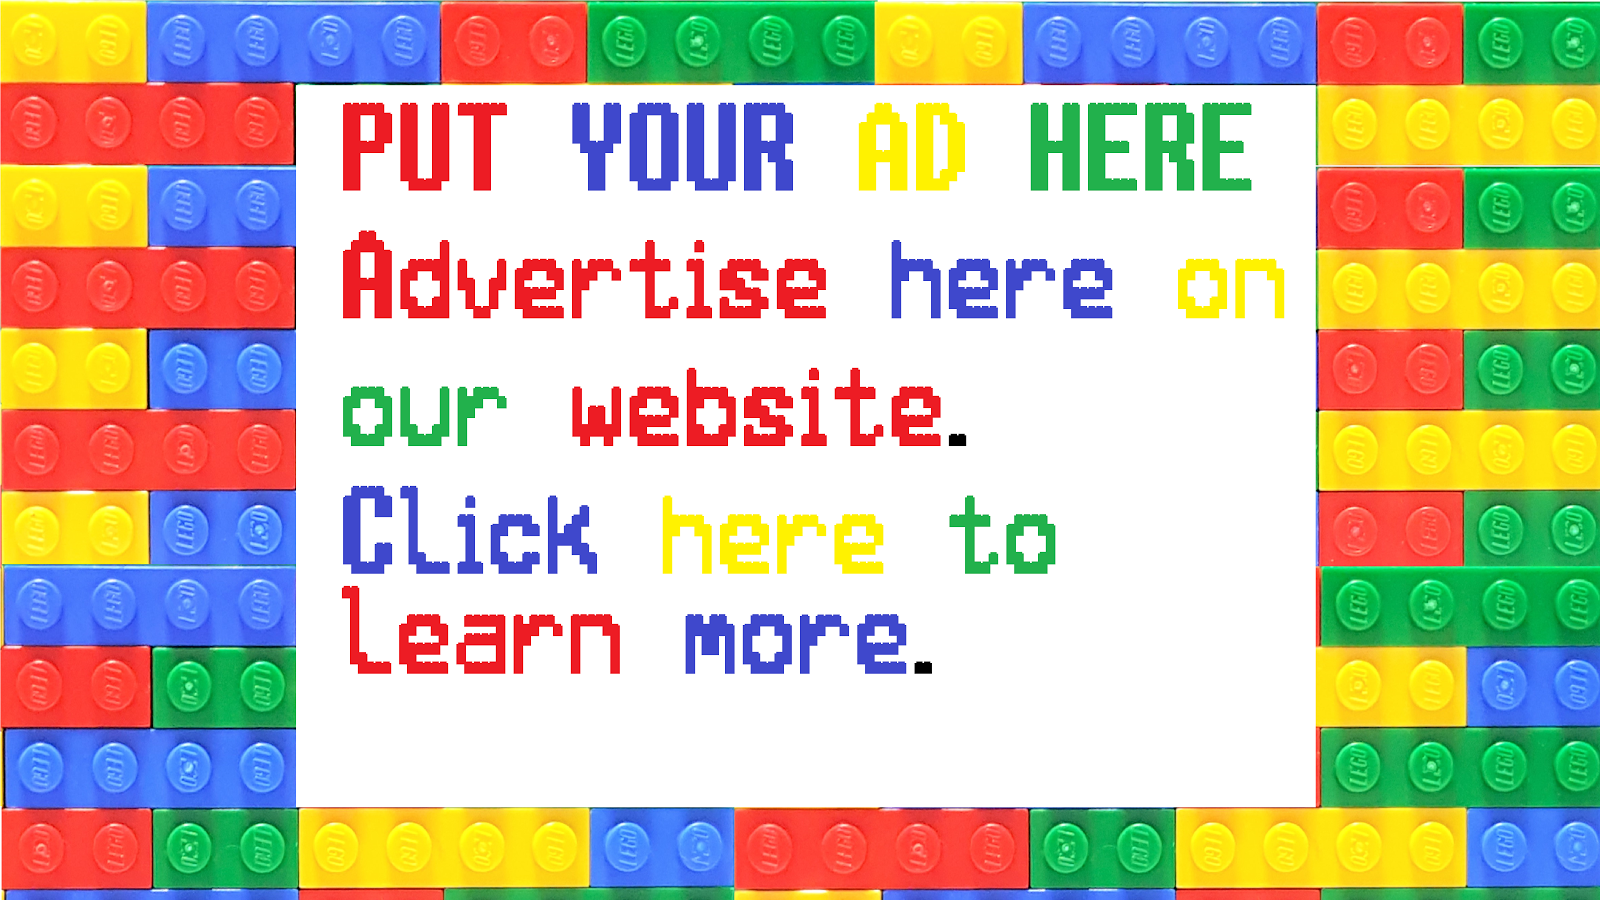 Advertise on My Page